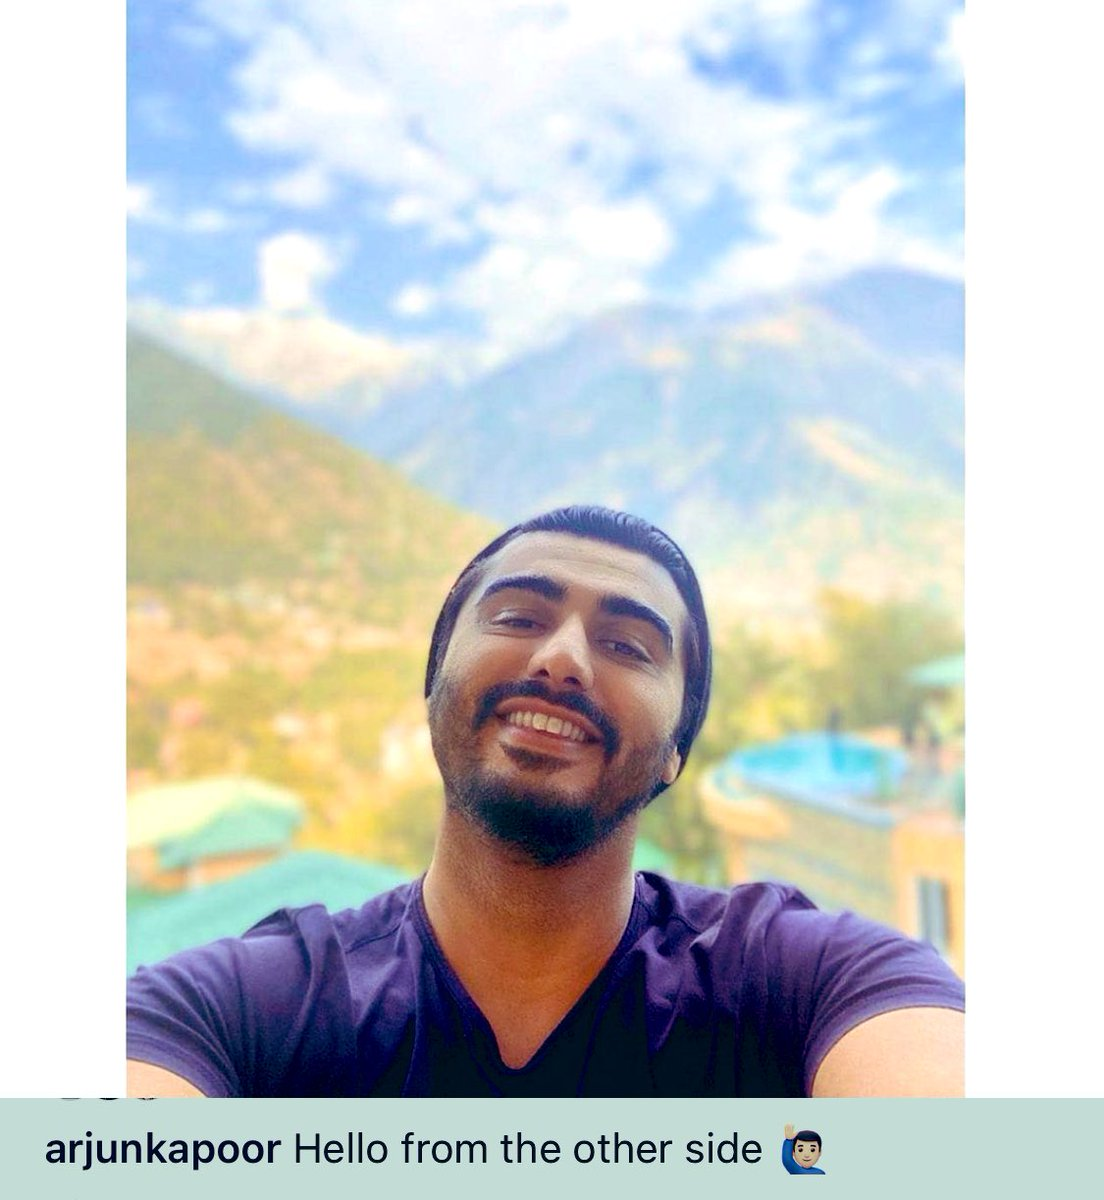 @arjunk26 Big Bear Hugs 🤗 for fulfilling one of the #December wish ✨🌟😀💙💙 Got ur selfie 🤳😋 Keep on Smiling ✨✨ Mr Cuteness why u so handsome 🔥🔥 #LoveU 😘😘💞 All the best for tdy s #BhootPolice shoot 🌈💥 #Palampur #HP  #DecemberToRemember 🌟💫